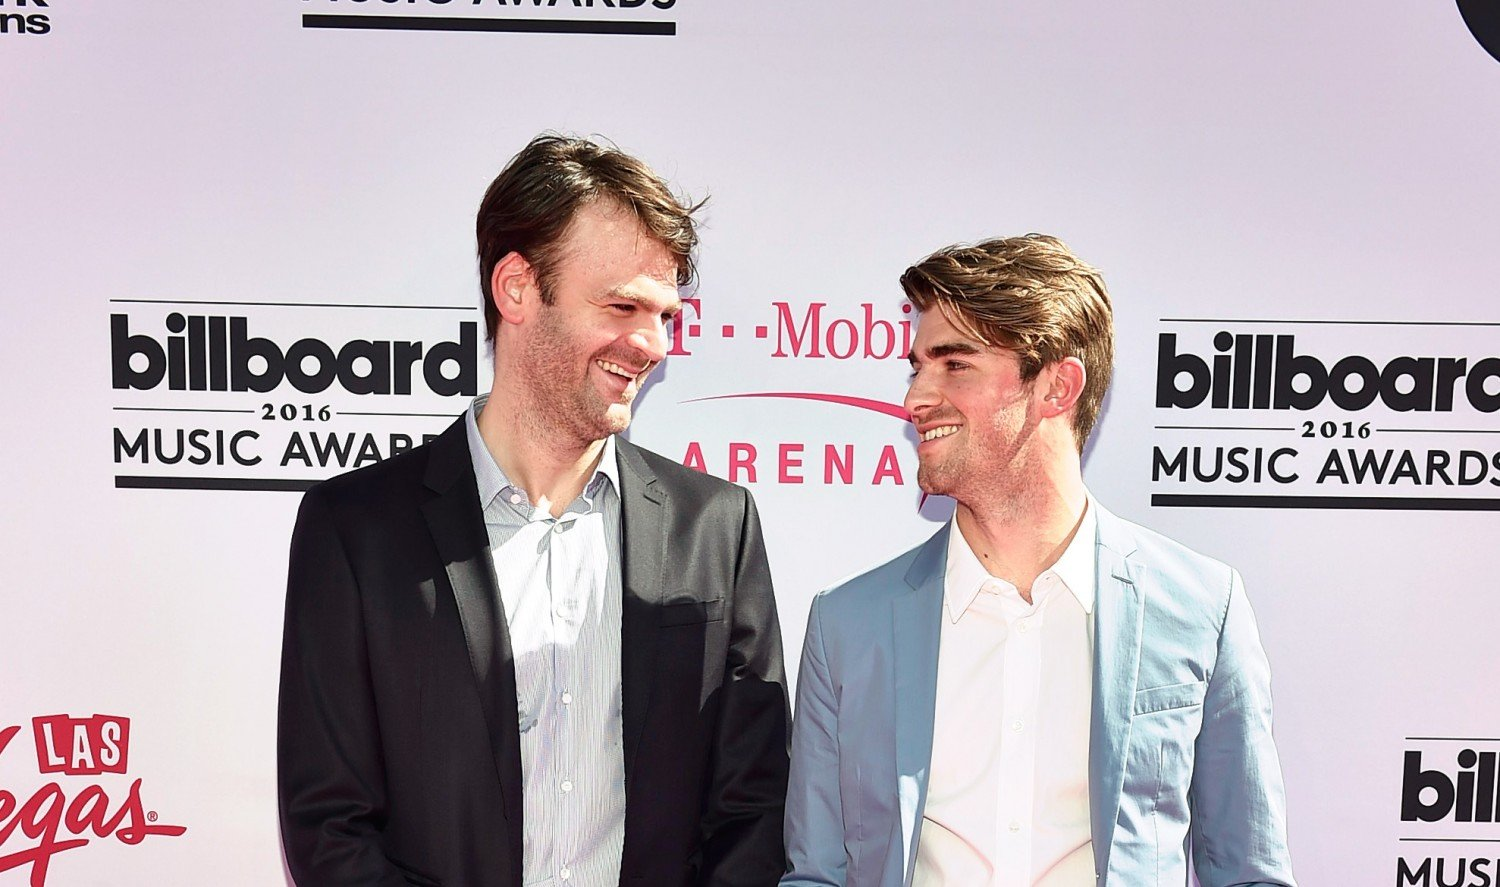 the-chainsmokers-e1466605652442-1500x887